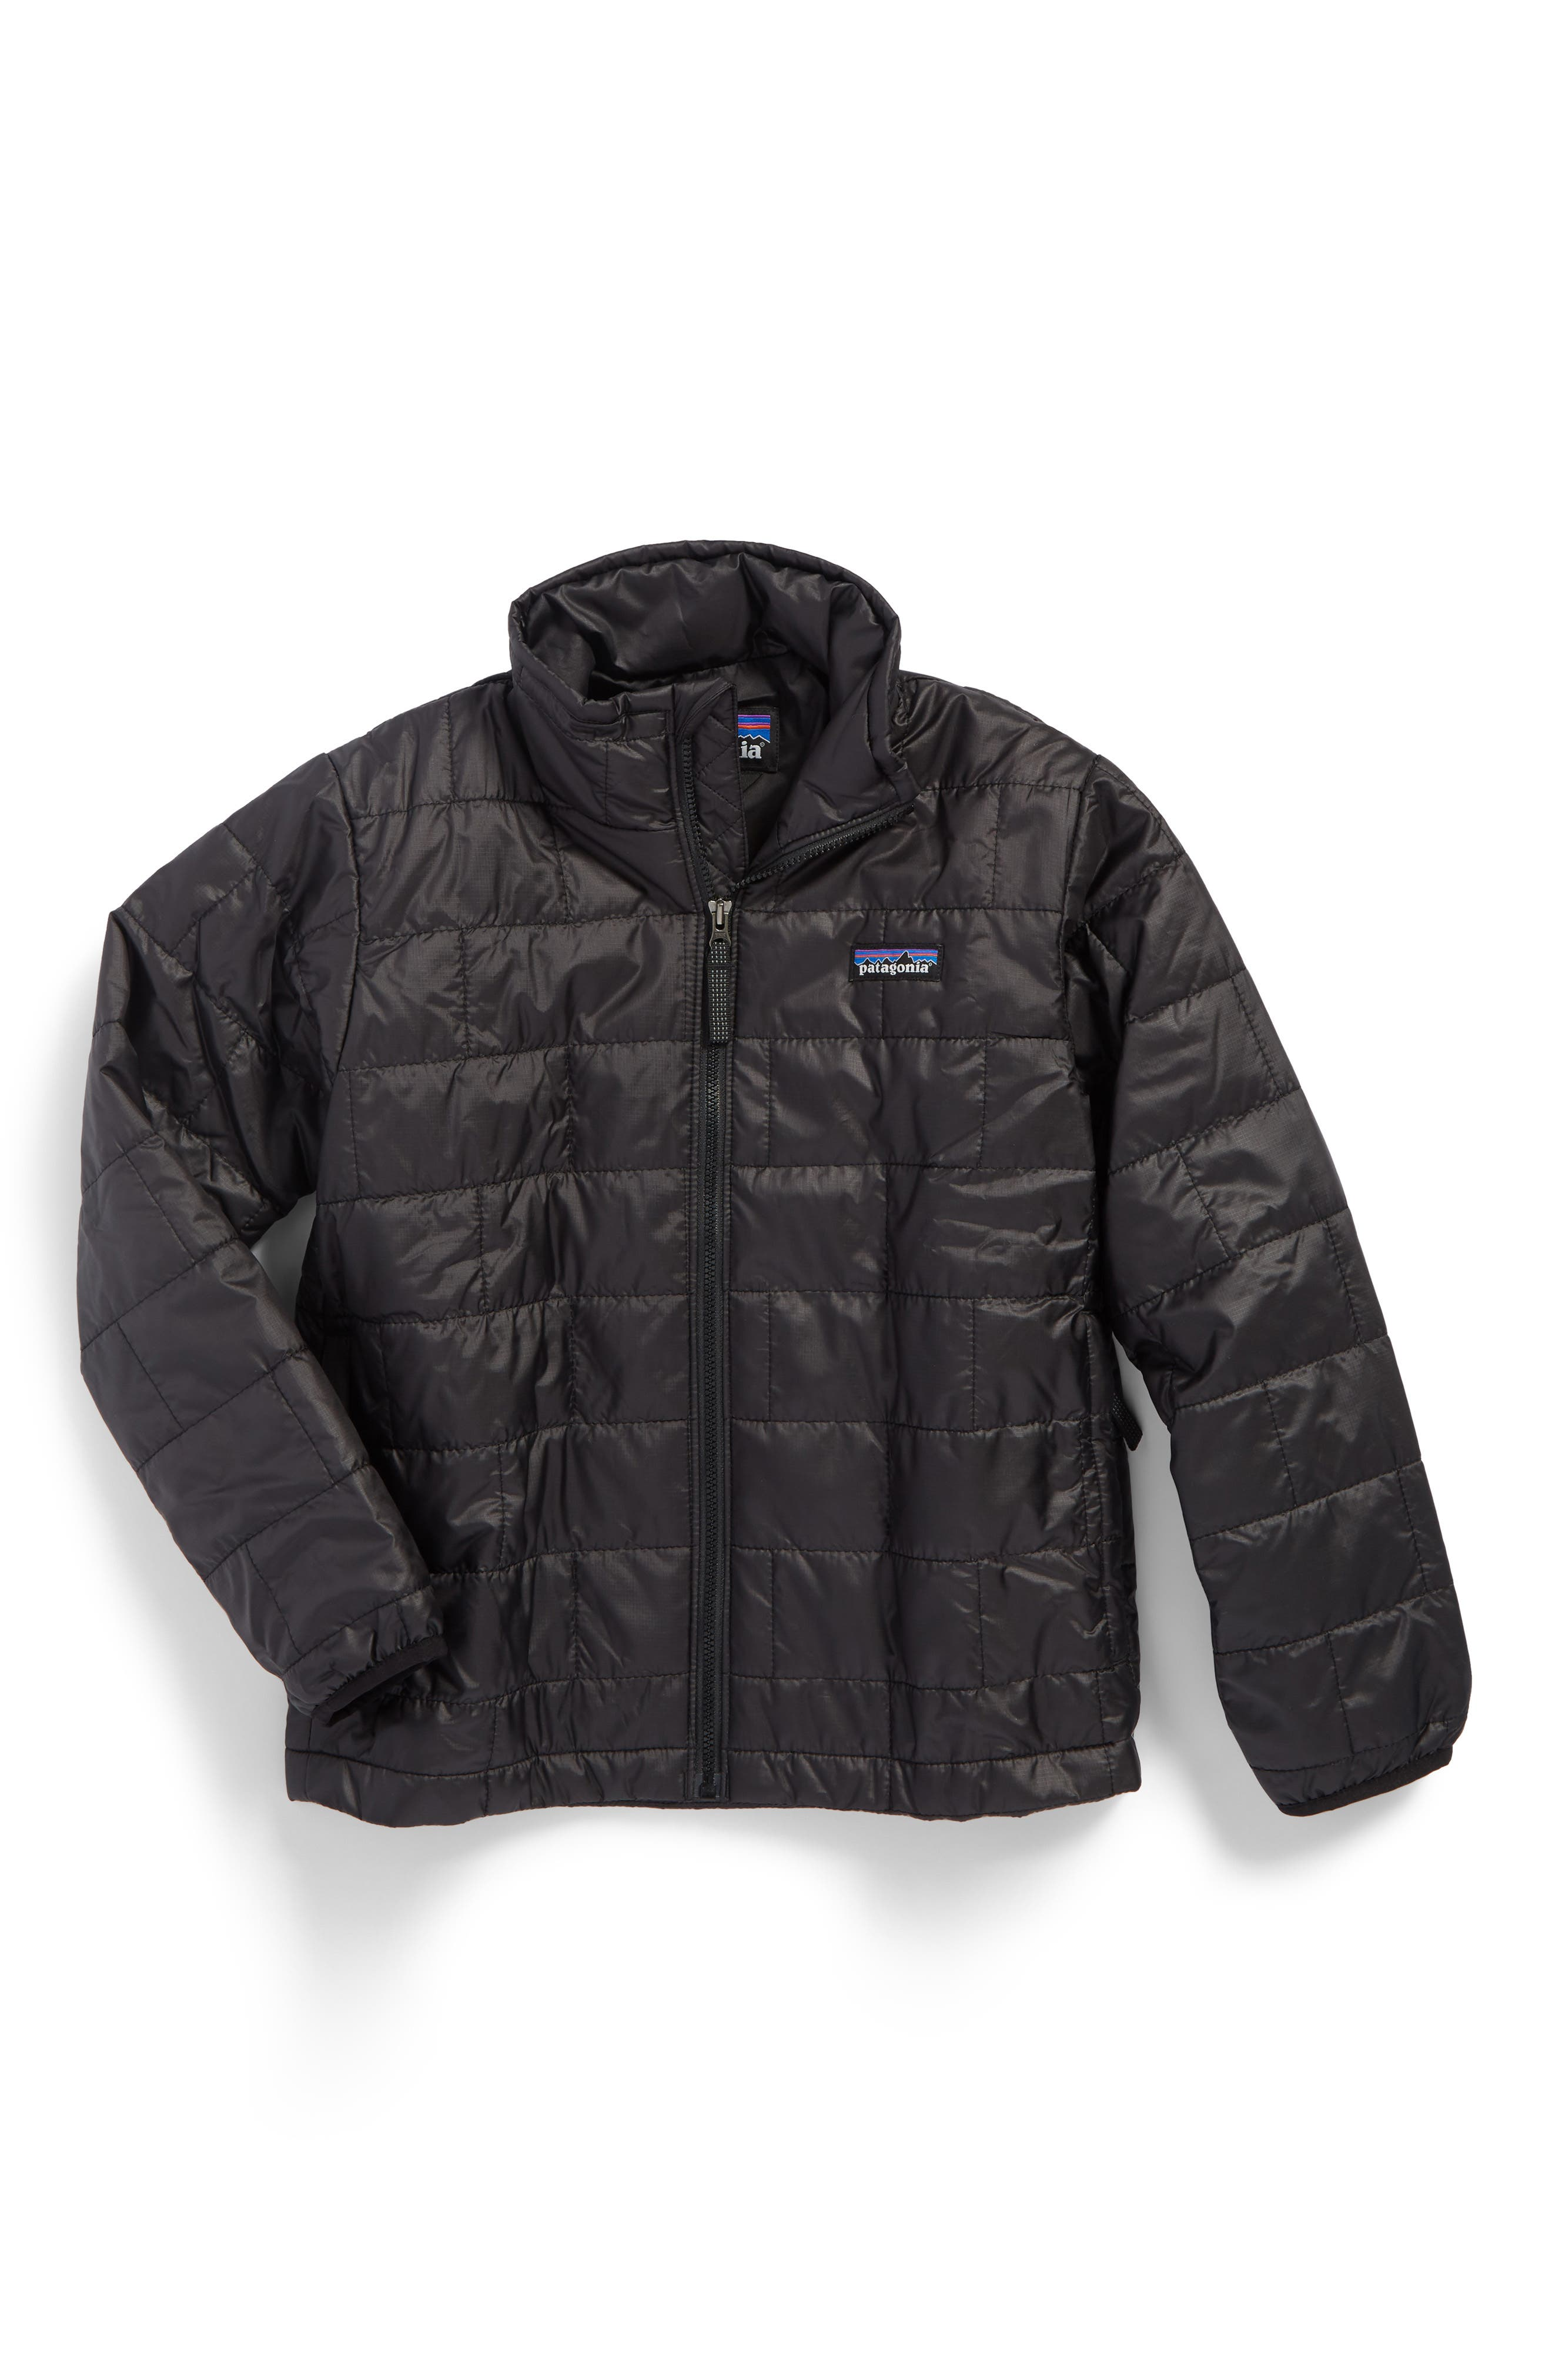 Nano Puff<sup>®</sup> Water Repellent PrimaLoft<sup>®</sup> Insulated Jacket,                         Main,                         color, BLACK